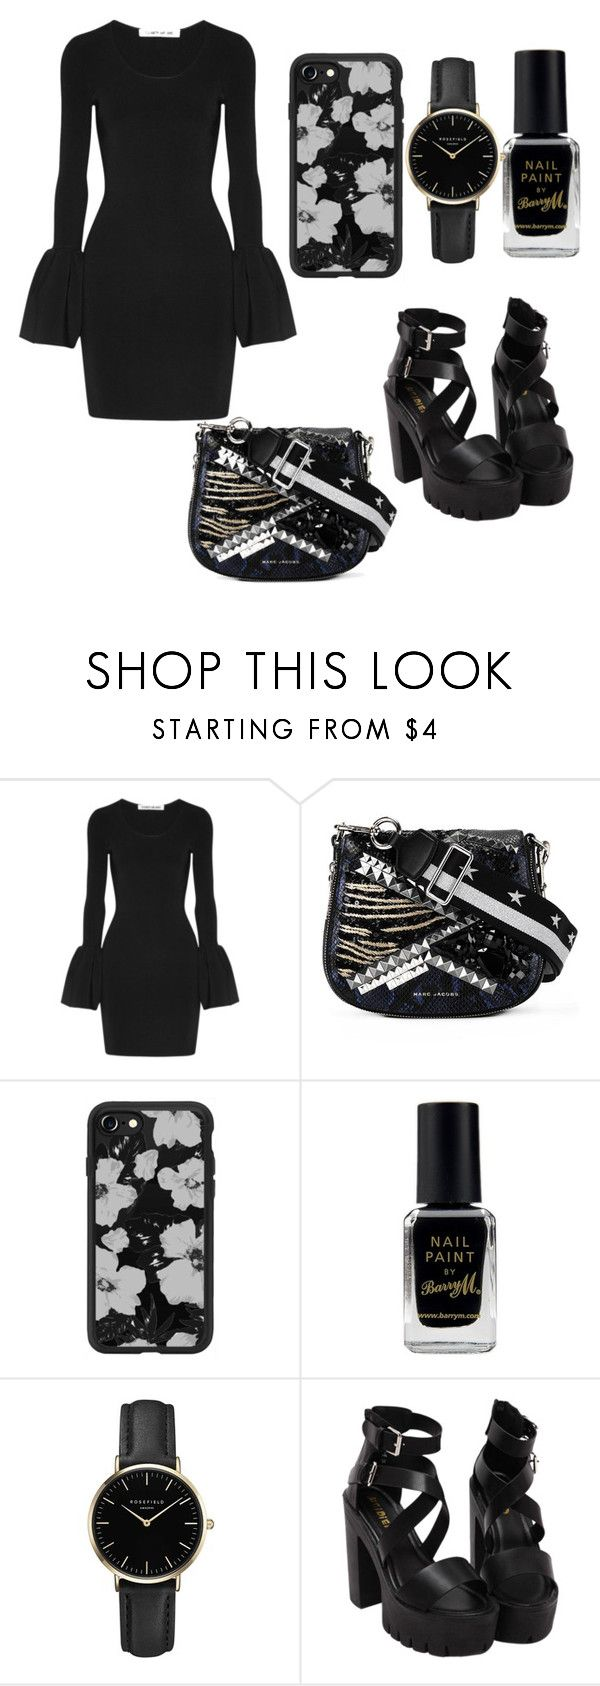 """Black cute look"" by topgirlkate ❤ liked on Polyvore featuring Elizabeth and James, Marc Jacobs, Casetify, Barry M and ROSEFIELD"